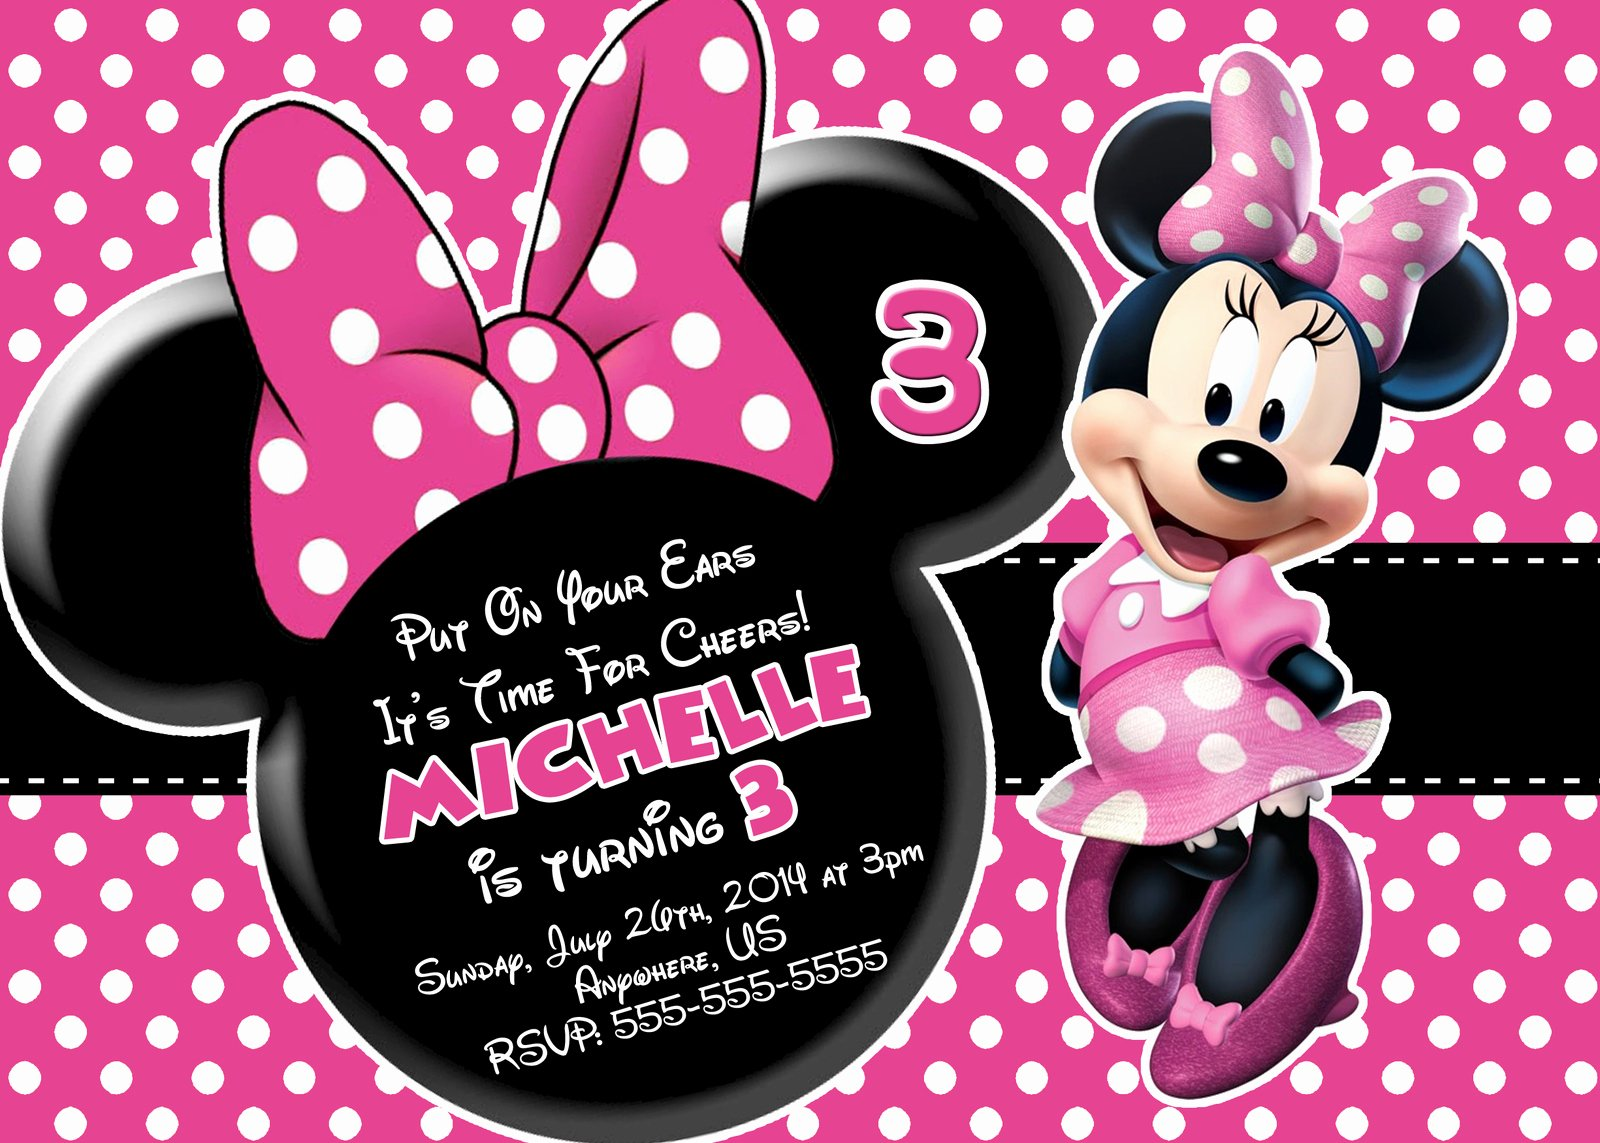 Minnie Mouse Birthday Invitations Awesome Minnie Mouse Printable Birthday Invitations Free